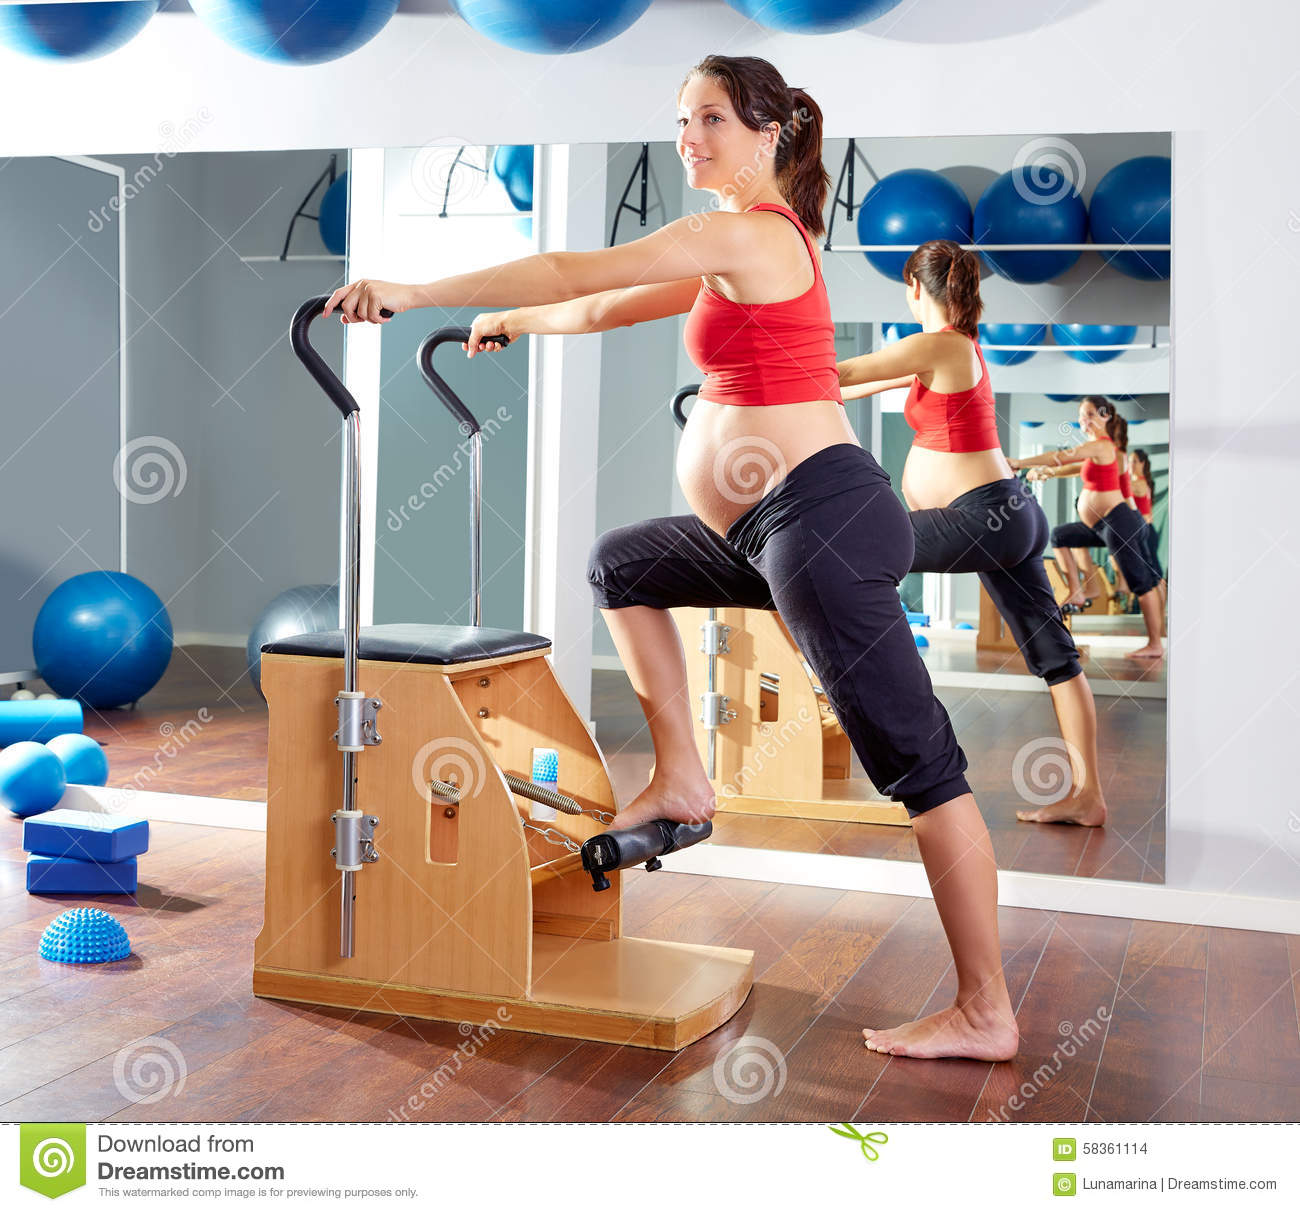 gym chest chair top 10 massage chairs pregnant woman pilates exercise wunda stock photo image of